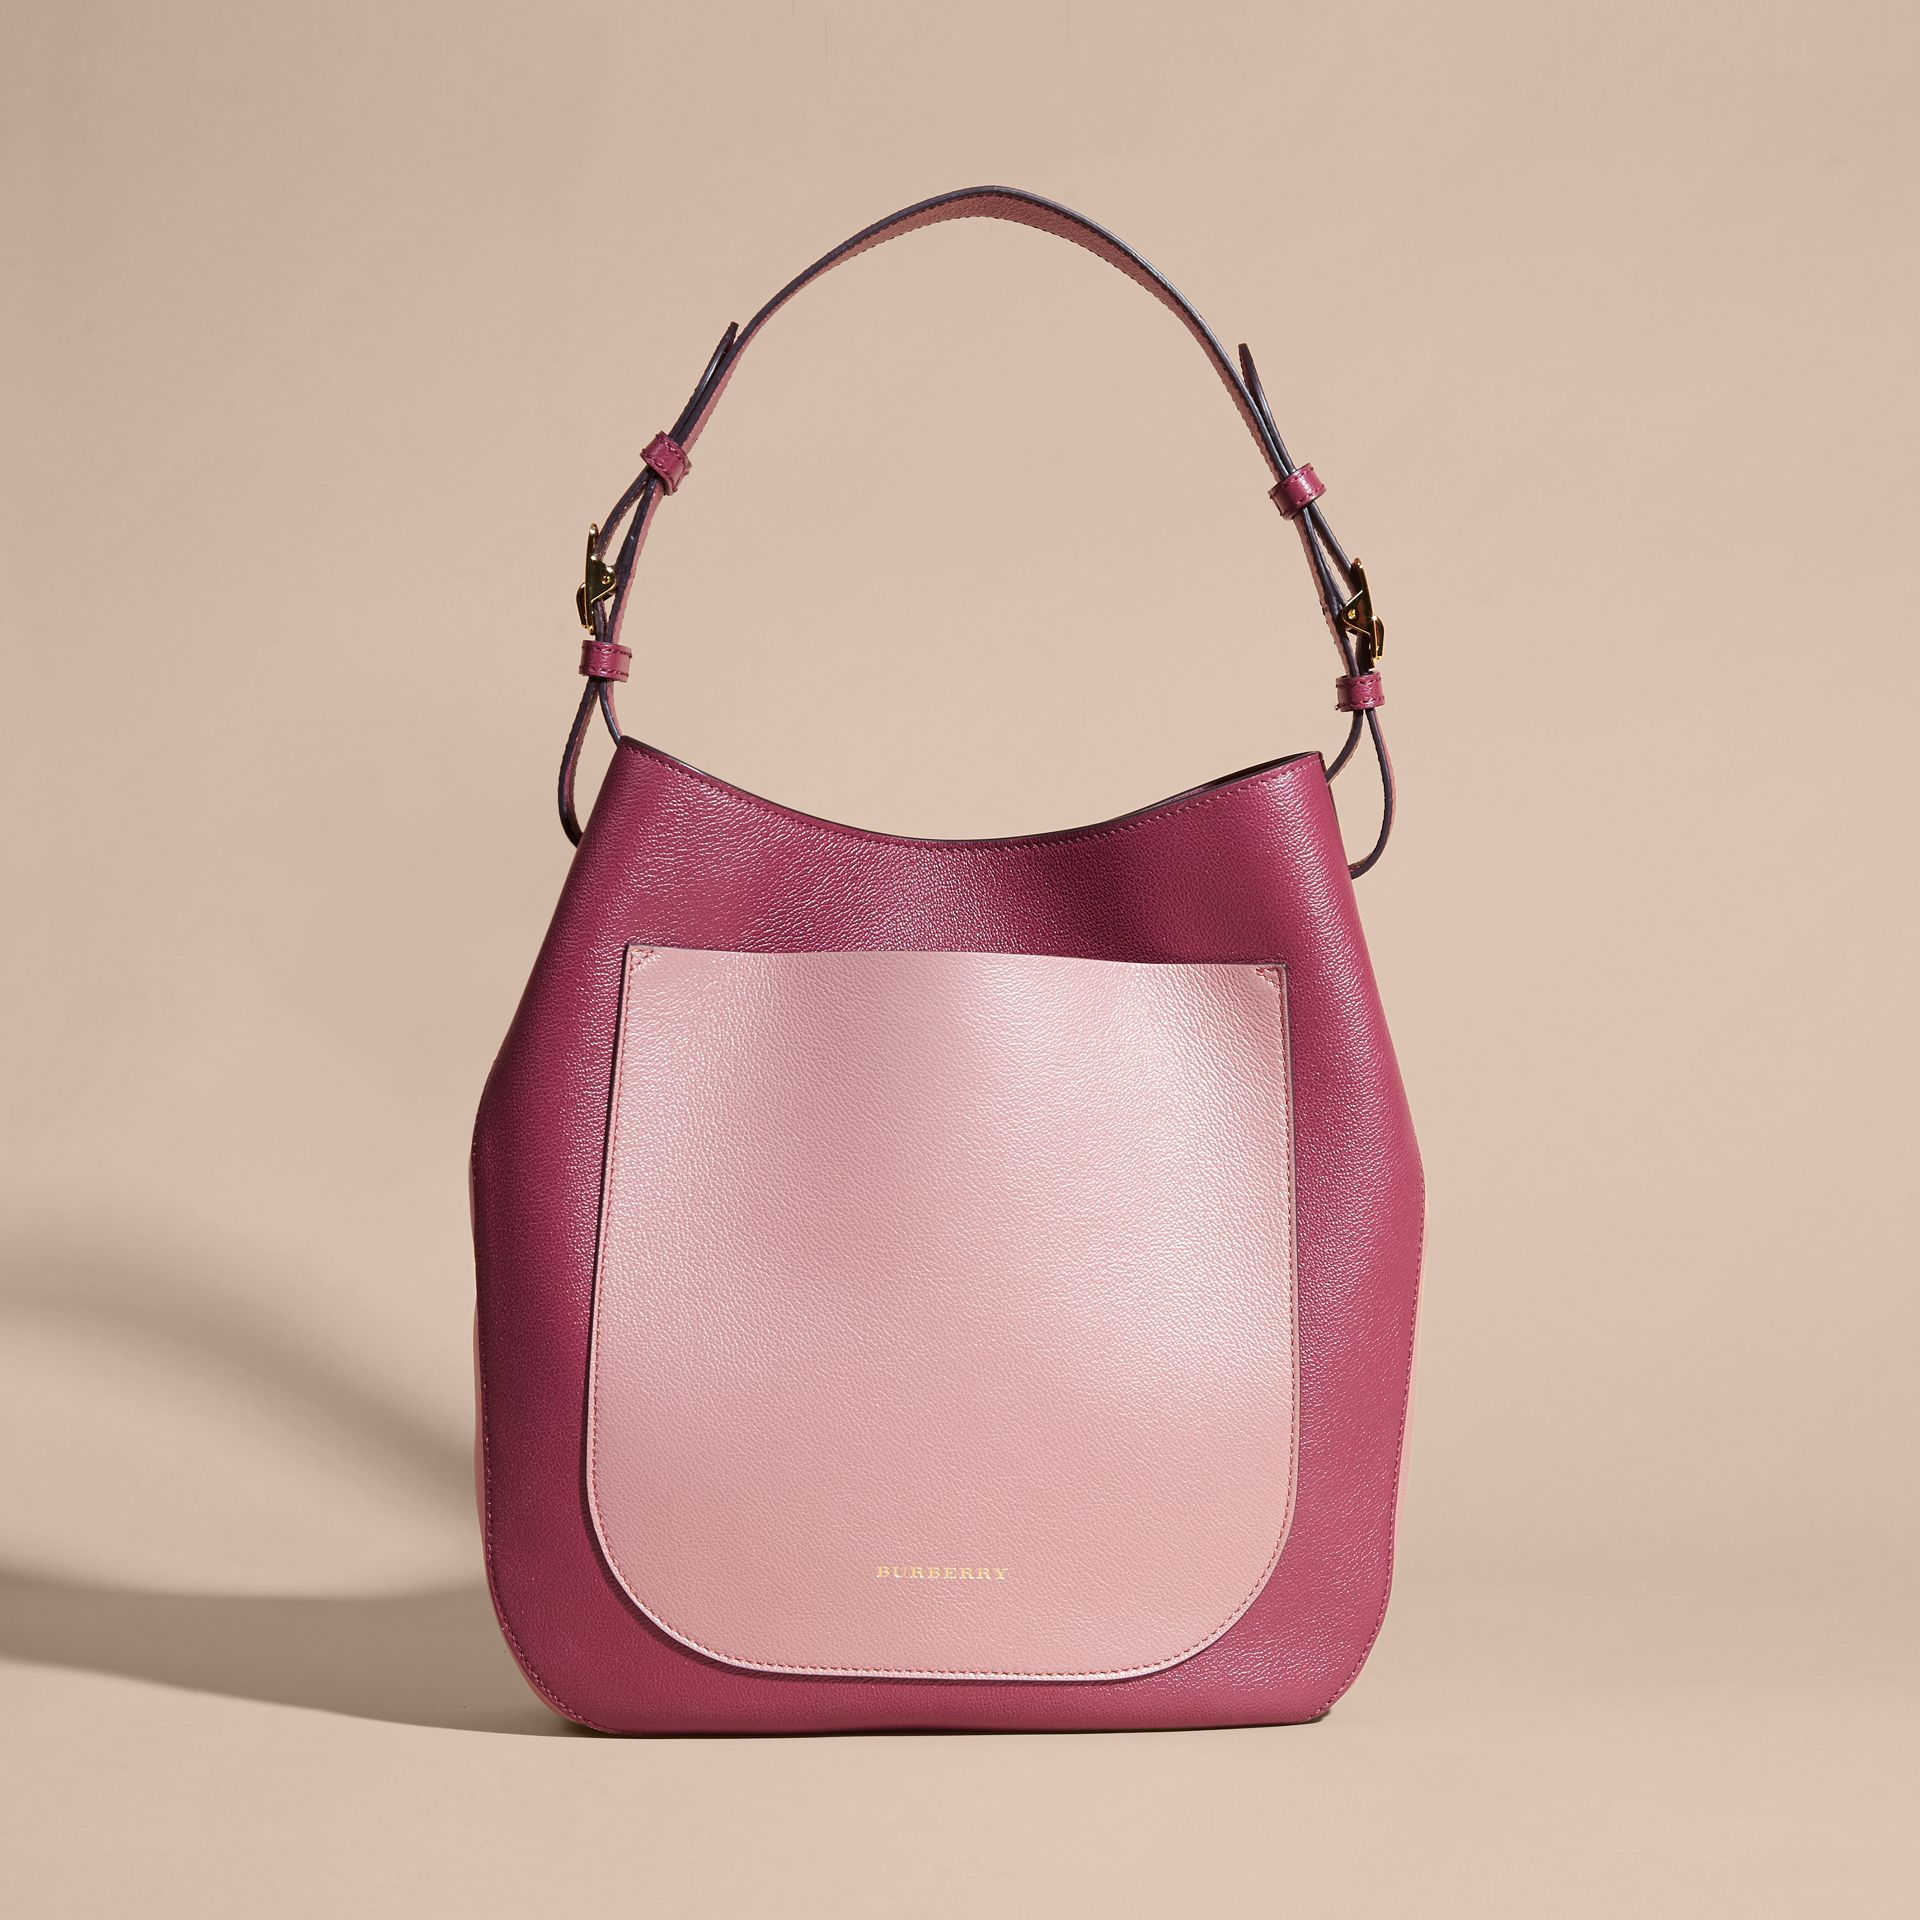 Textured Leather Shoulder Bag in Dark Plum/ Dusty Pink - gallery image 8